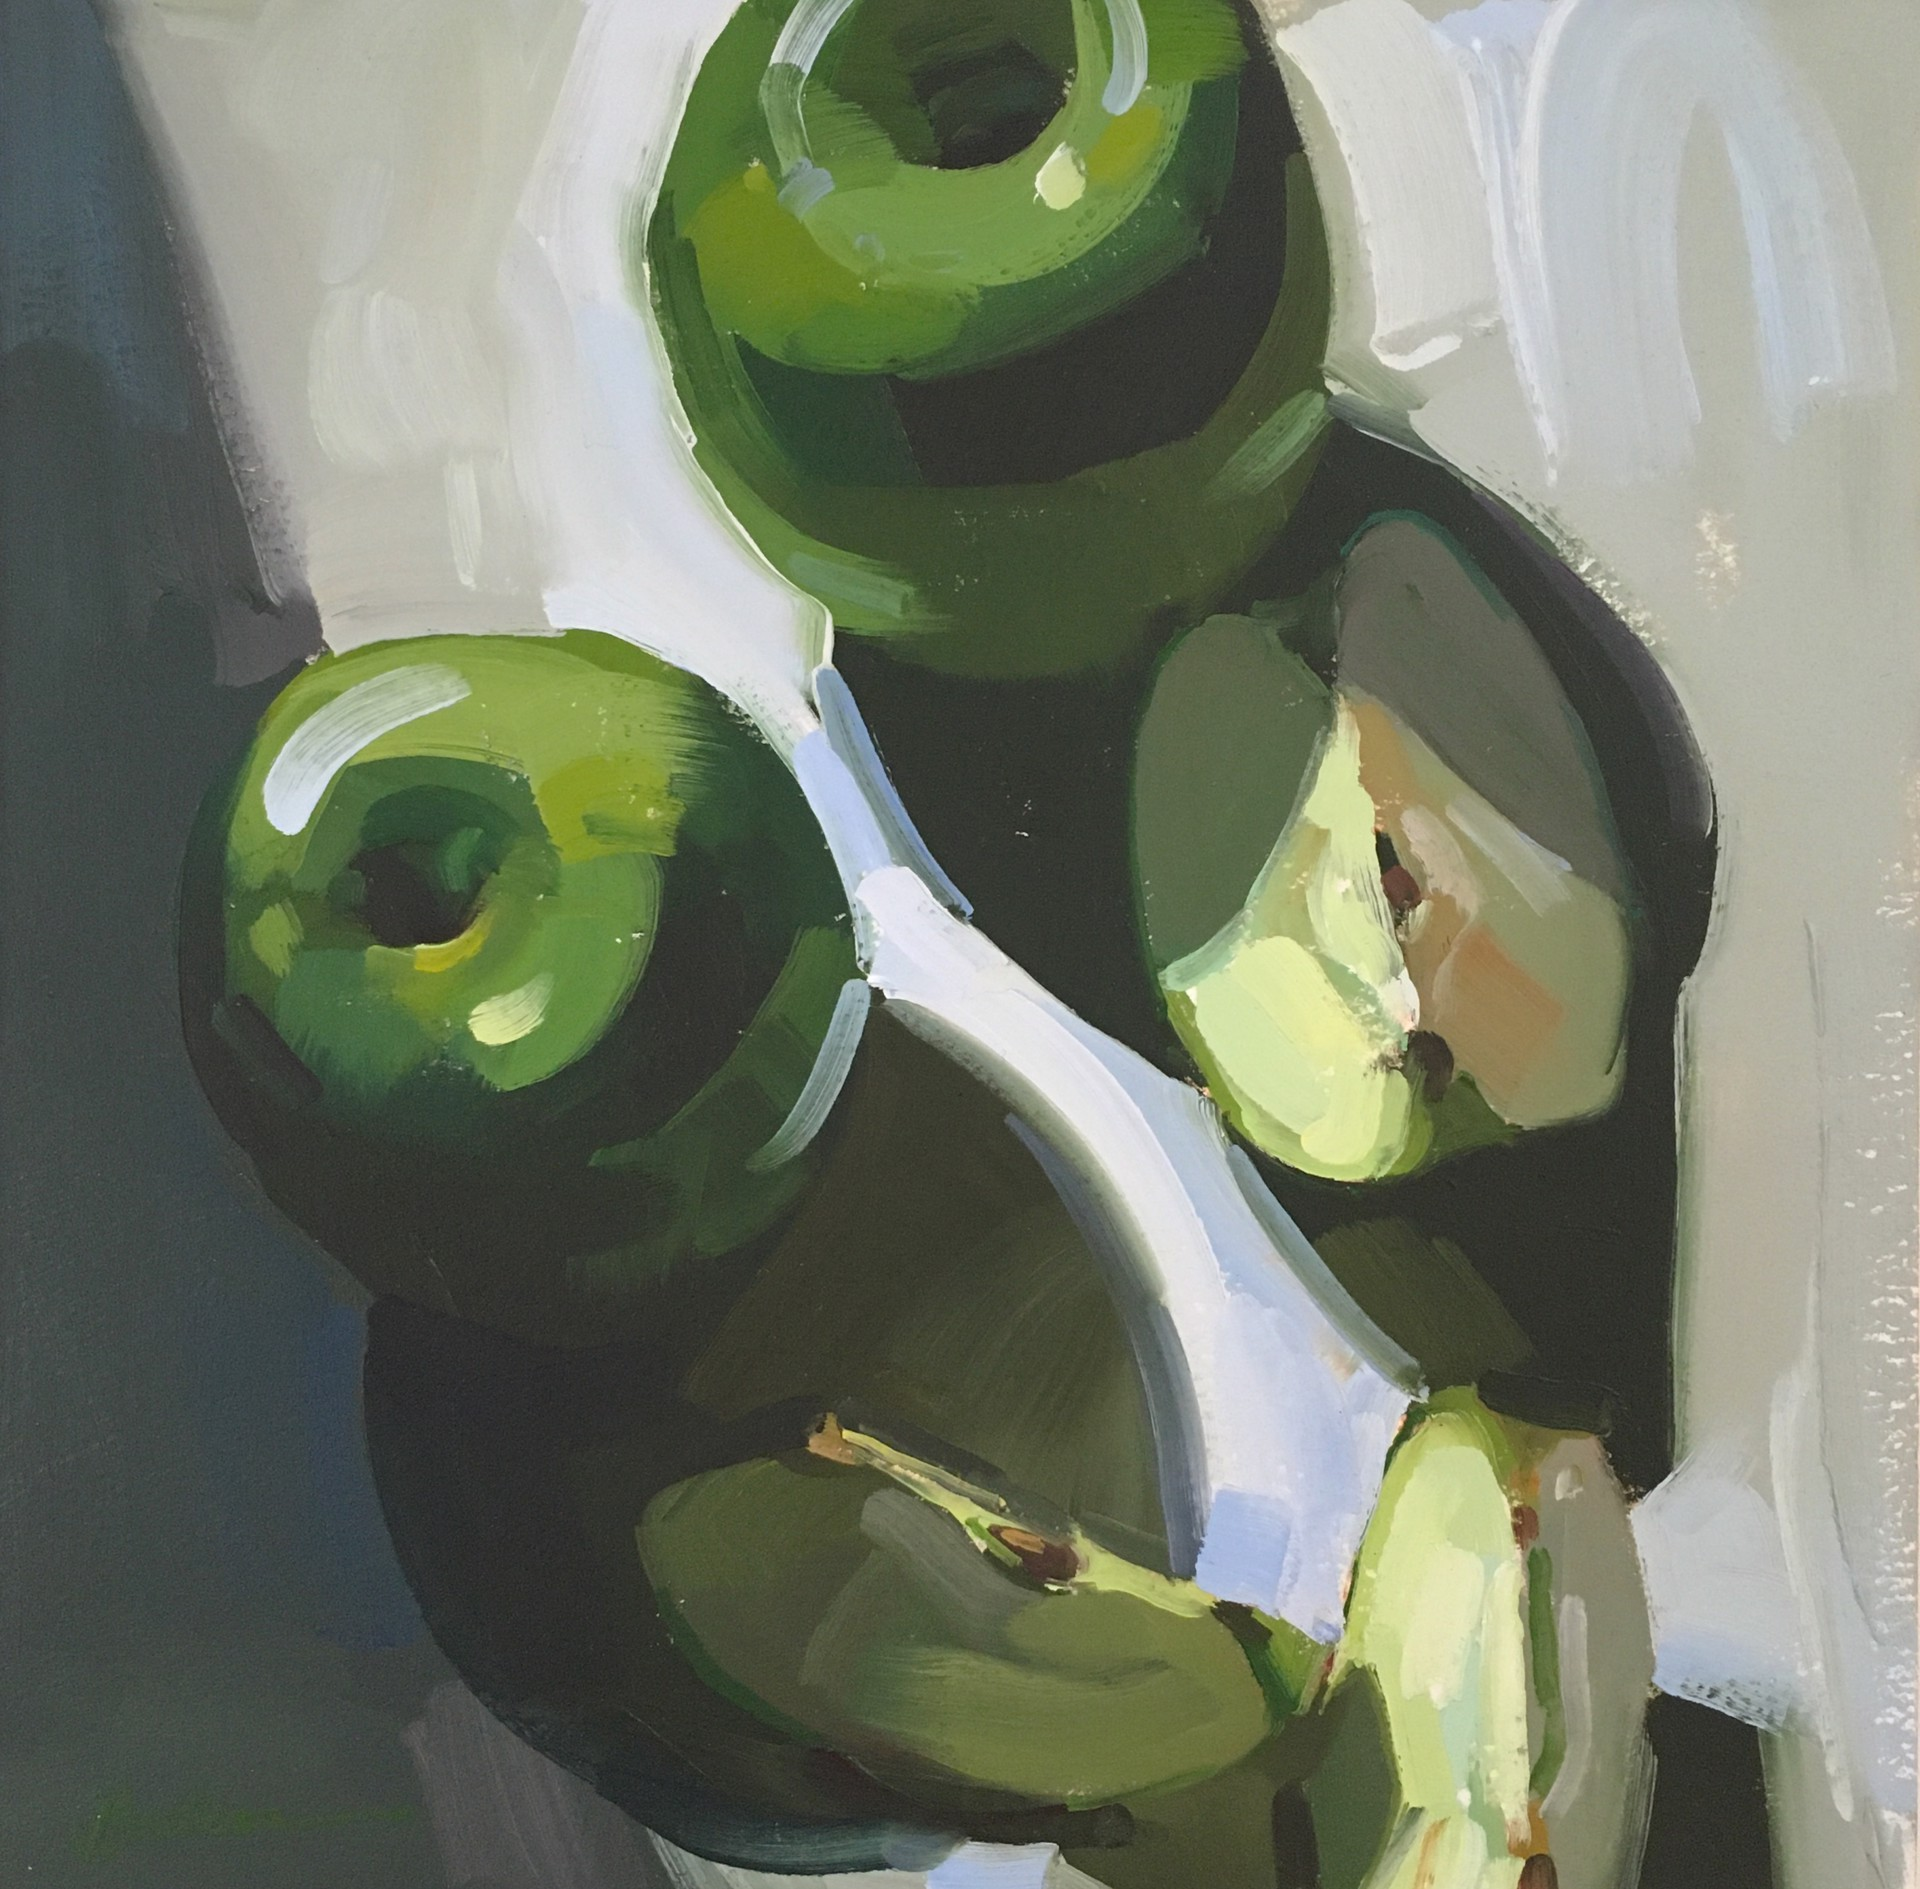 Apples in Shadows by Samantha Buller